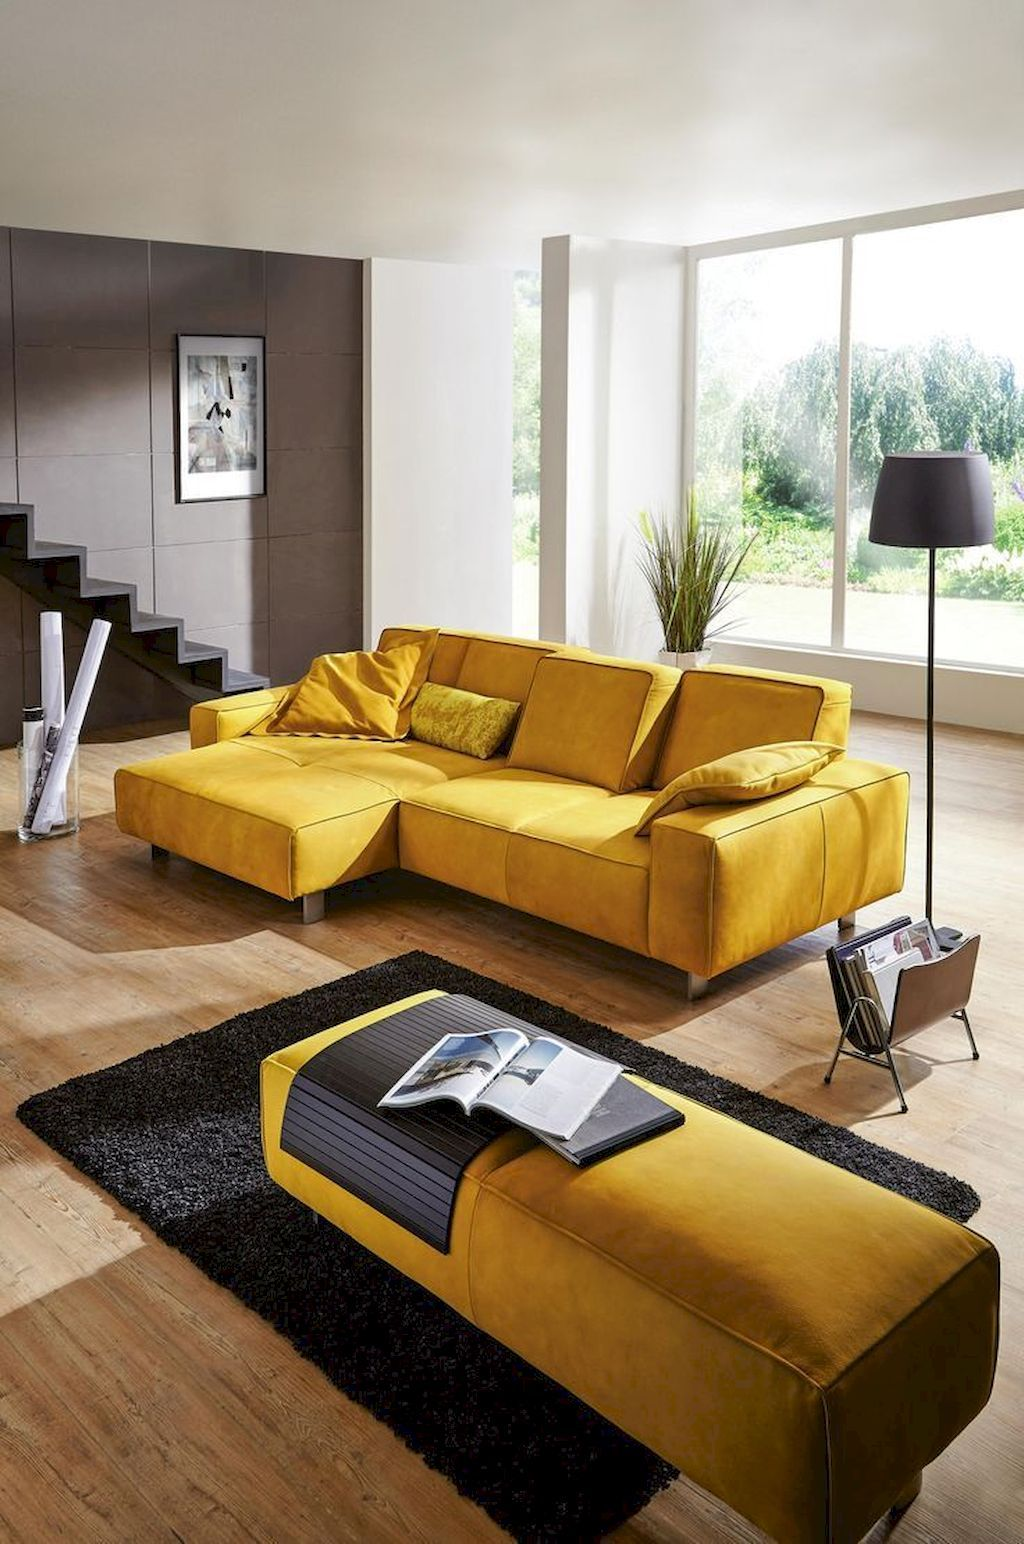 Rolf Benz Sofa 345 Yellow Sofa A Sunshine Piece For Your Living Room Home